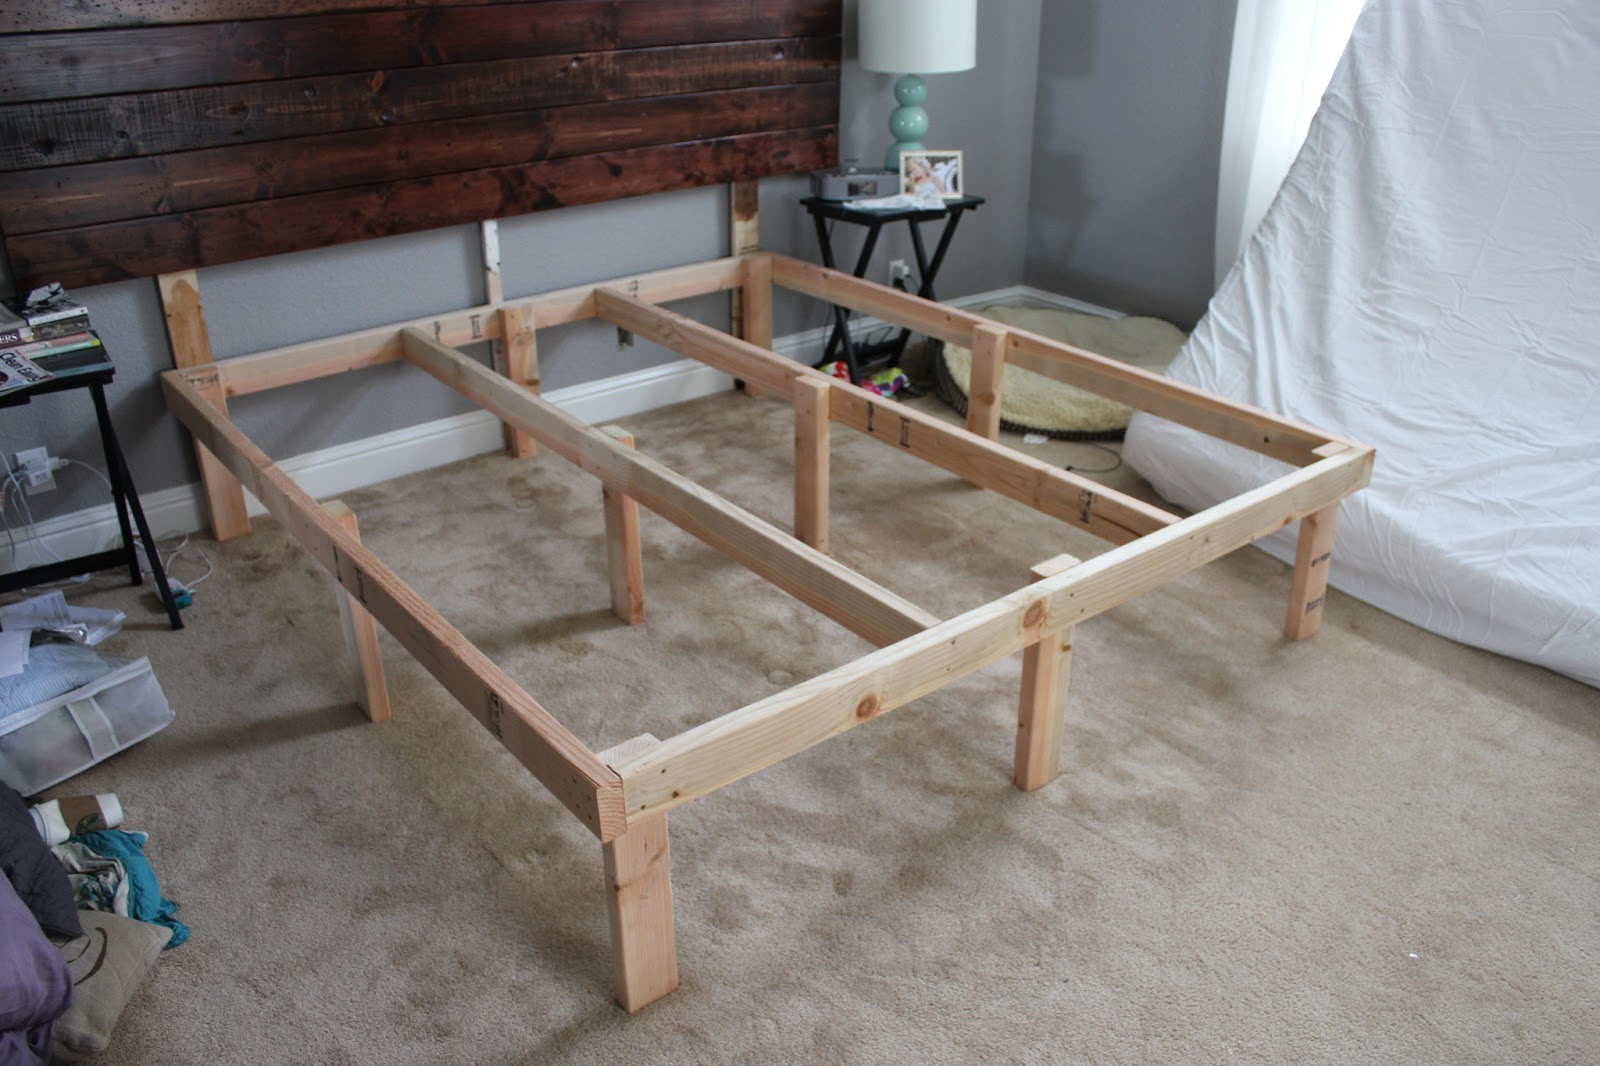 Diy king bed frame - At Home With The Hansens Diy The 100 Platform Bed Box Spring